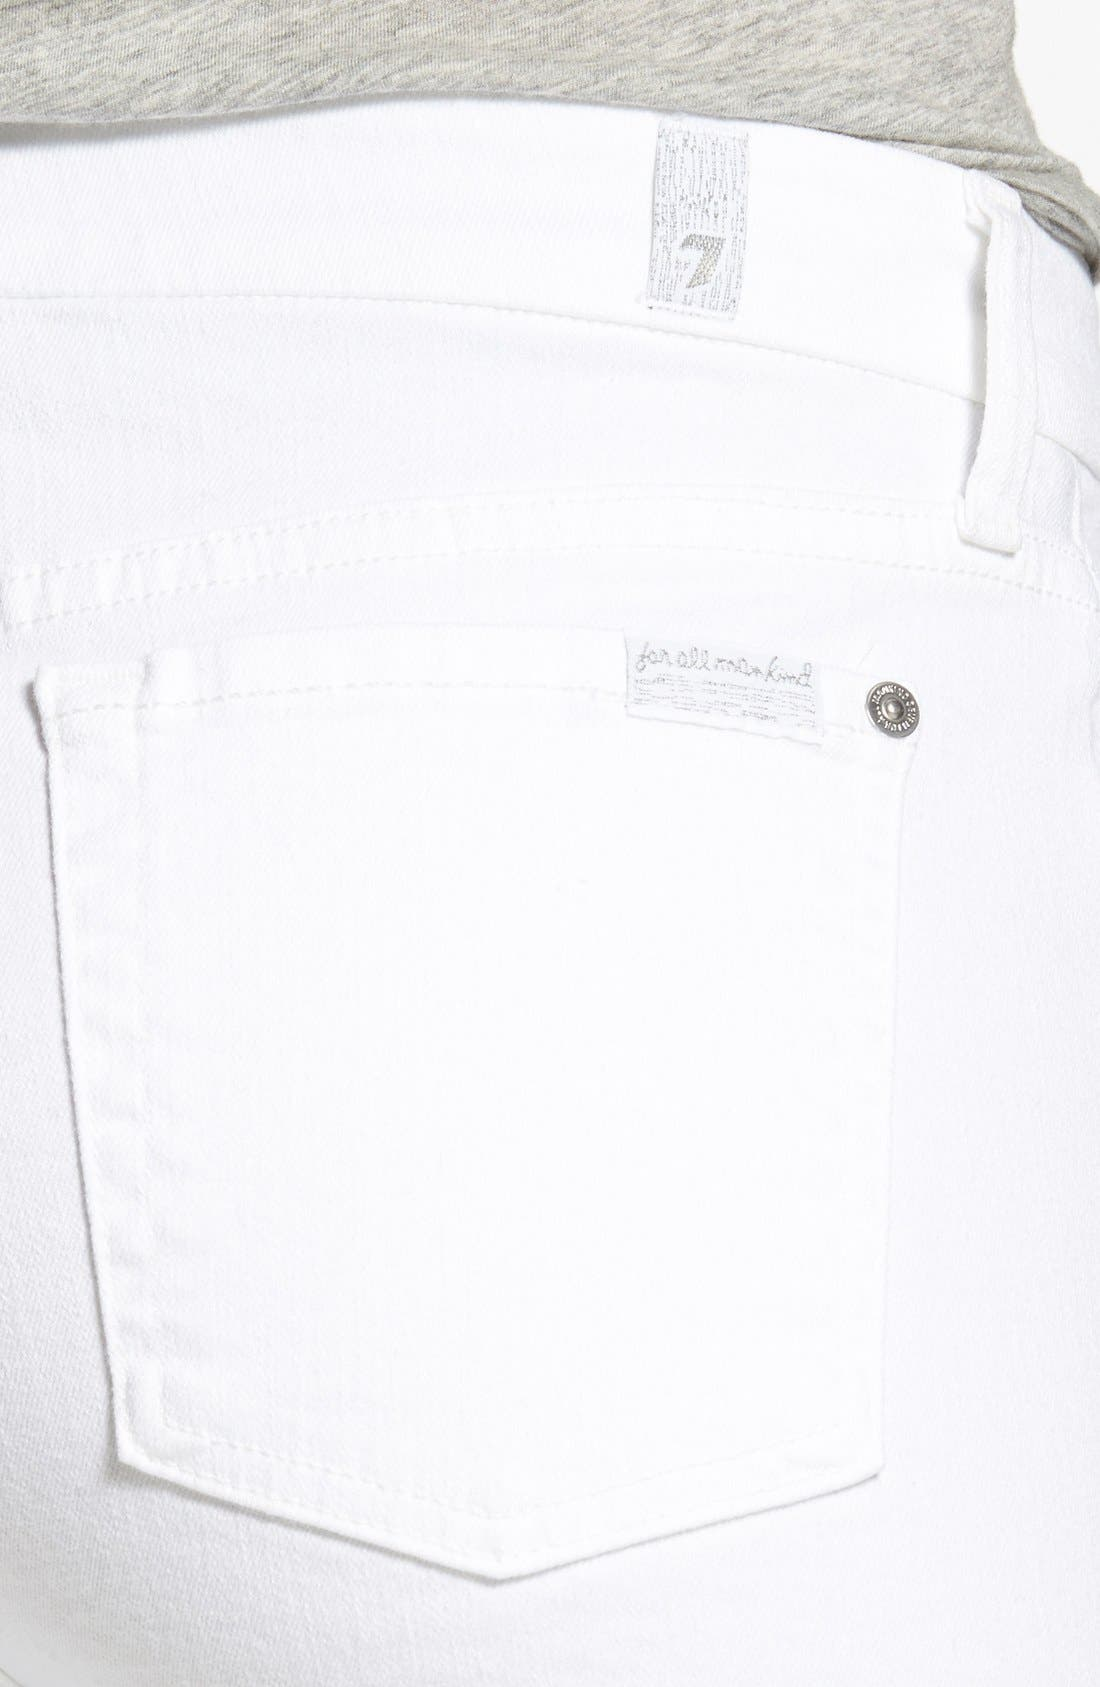 'The Skinny' Skinny Jeans,                             Alternate thumbnail 4, color,                             Clean White